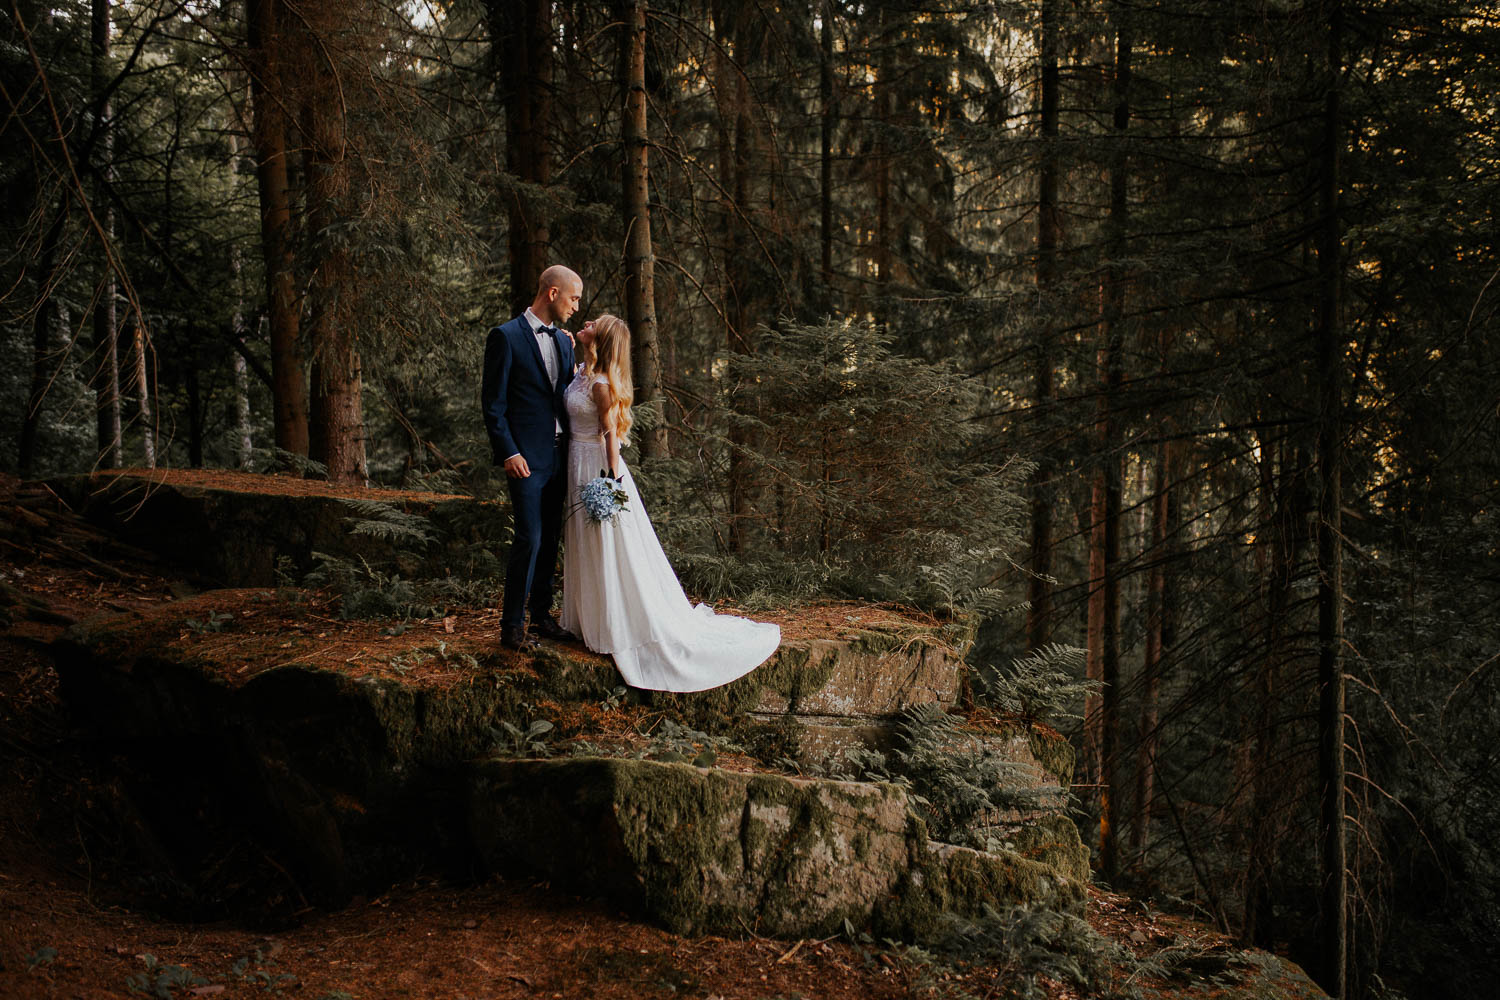 After Wedding Shooting In Pforzheim Schwarzwald - Oleg Tru destination wedding photographer